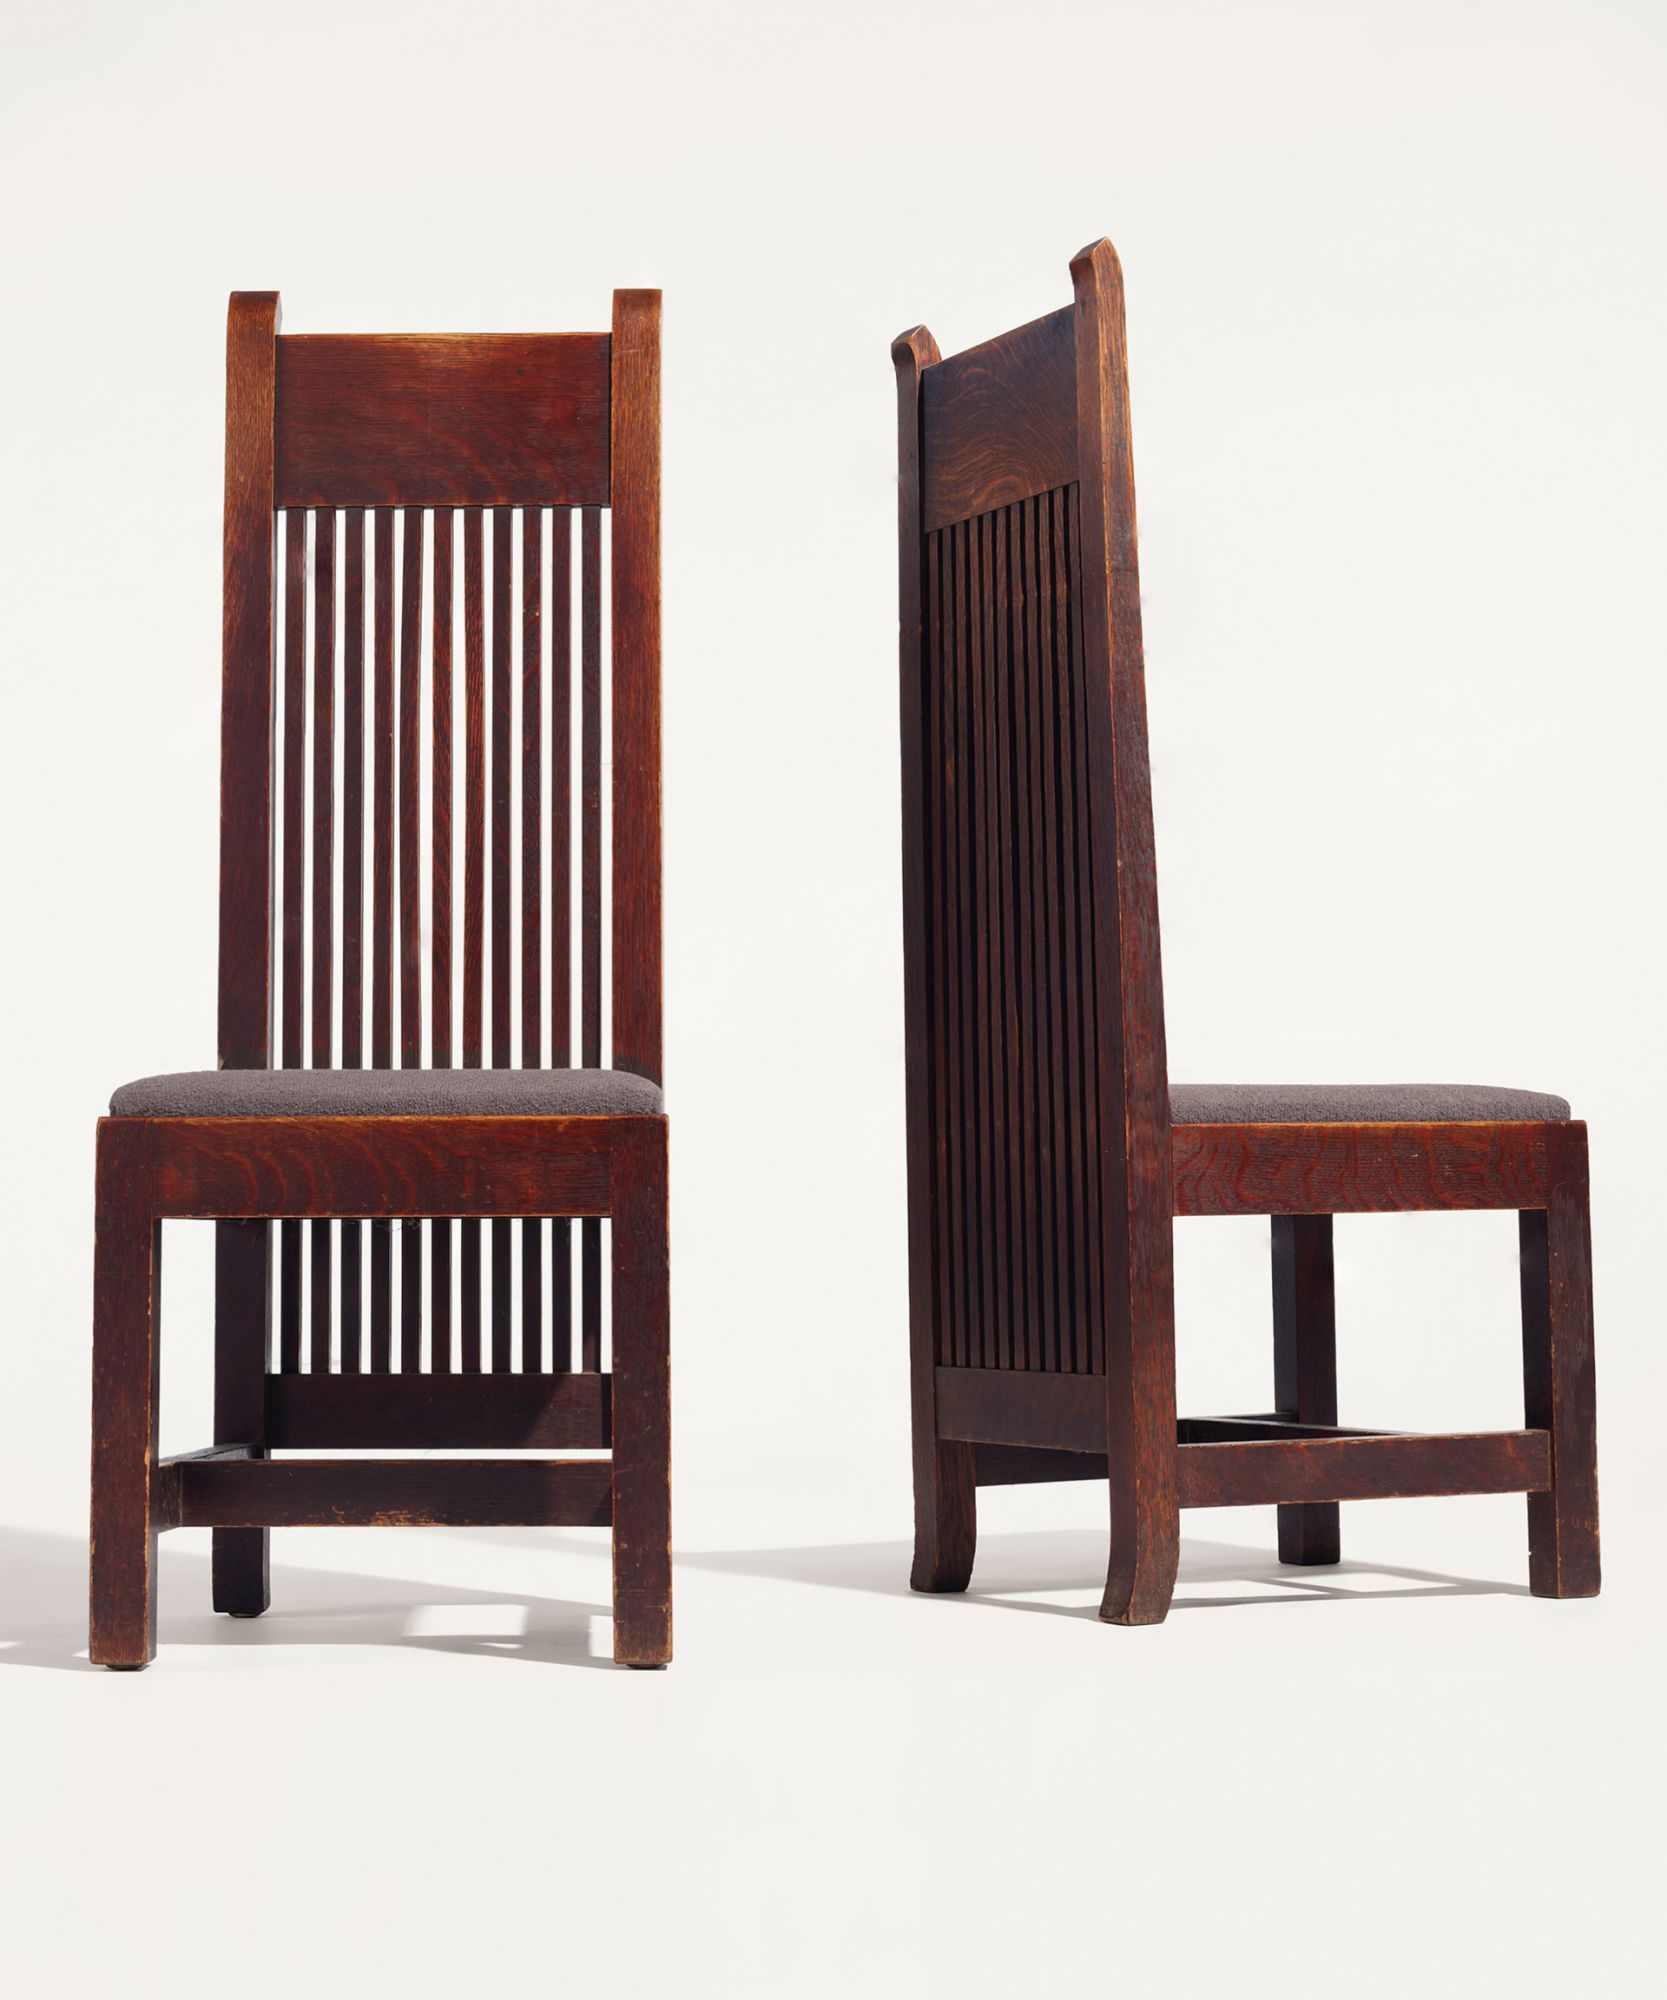 Two sets of chairs designed by architect Frank Lloyd Wright for the Ward W Willits House will be auctioned at Christie's in December.  © Courtesy of Christie's